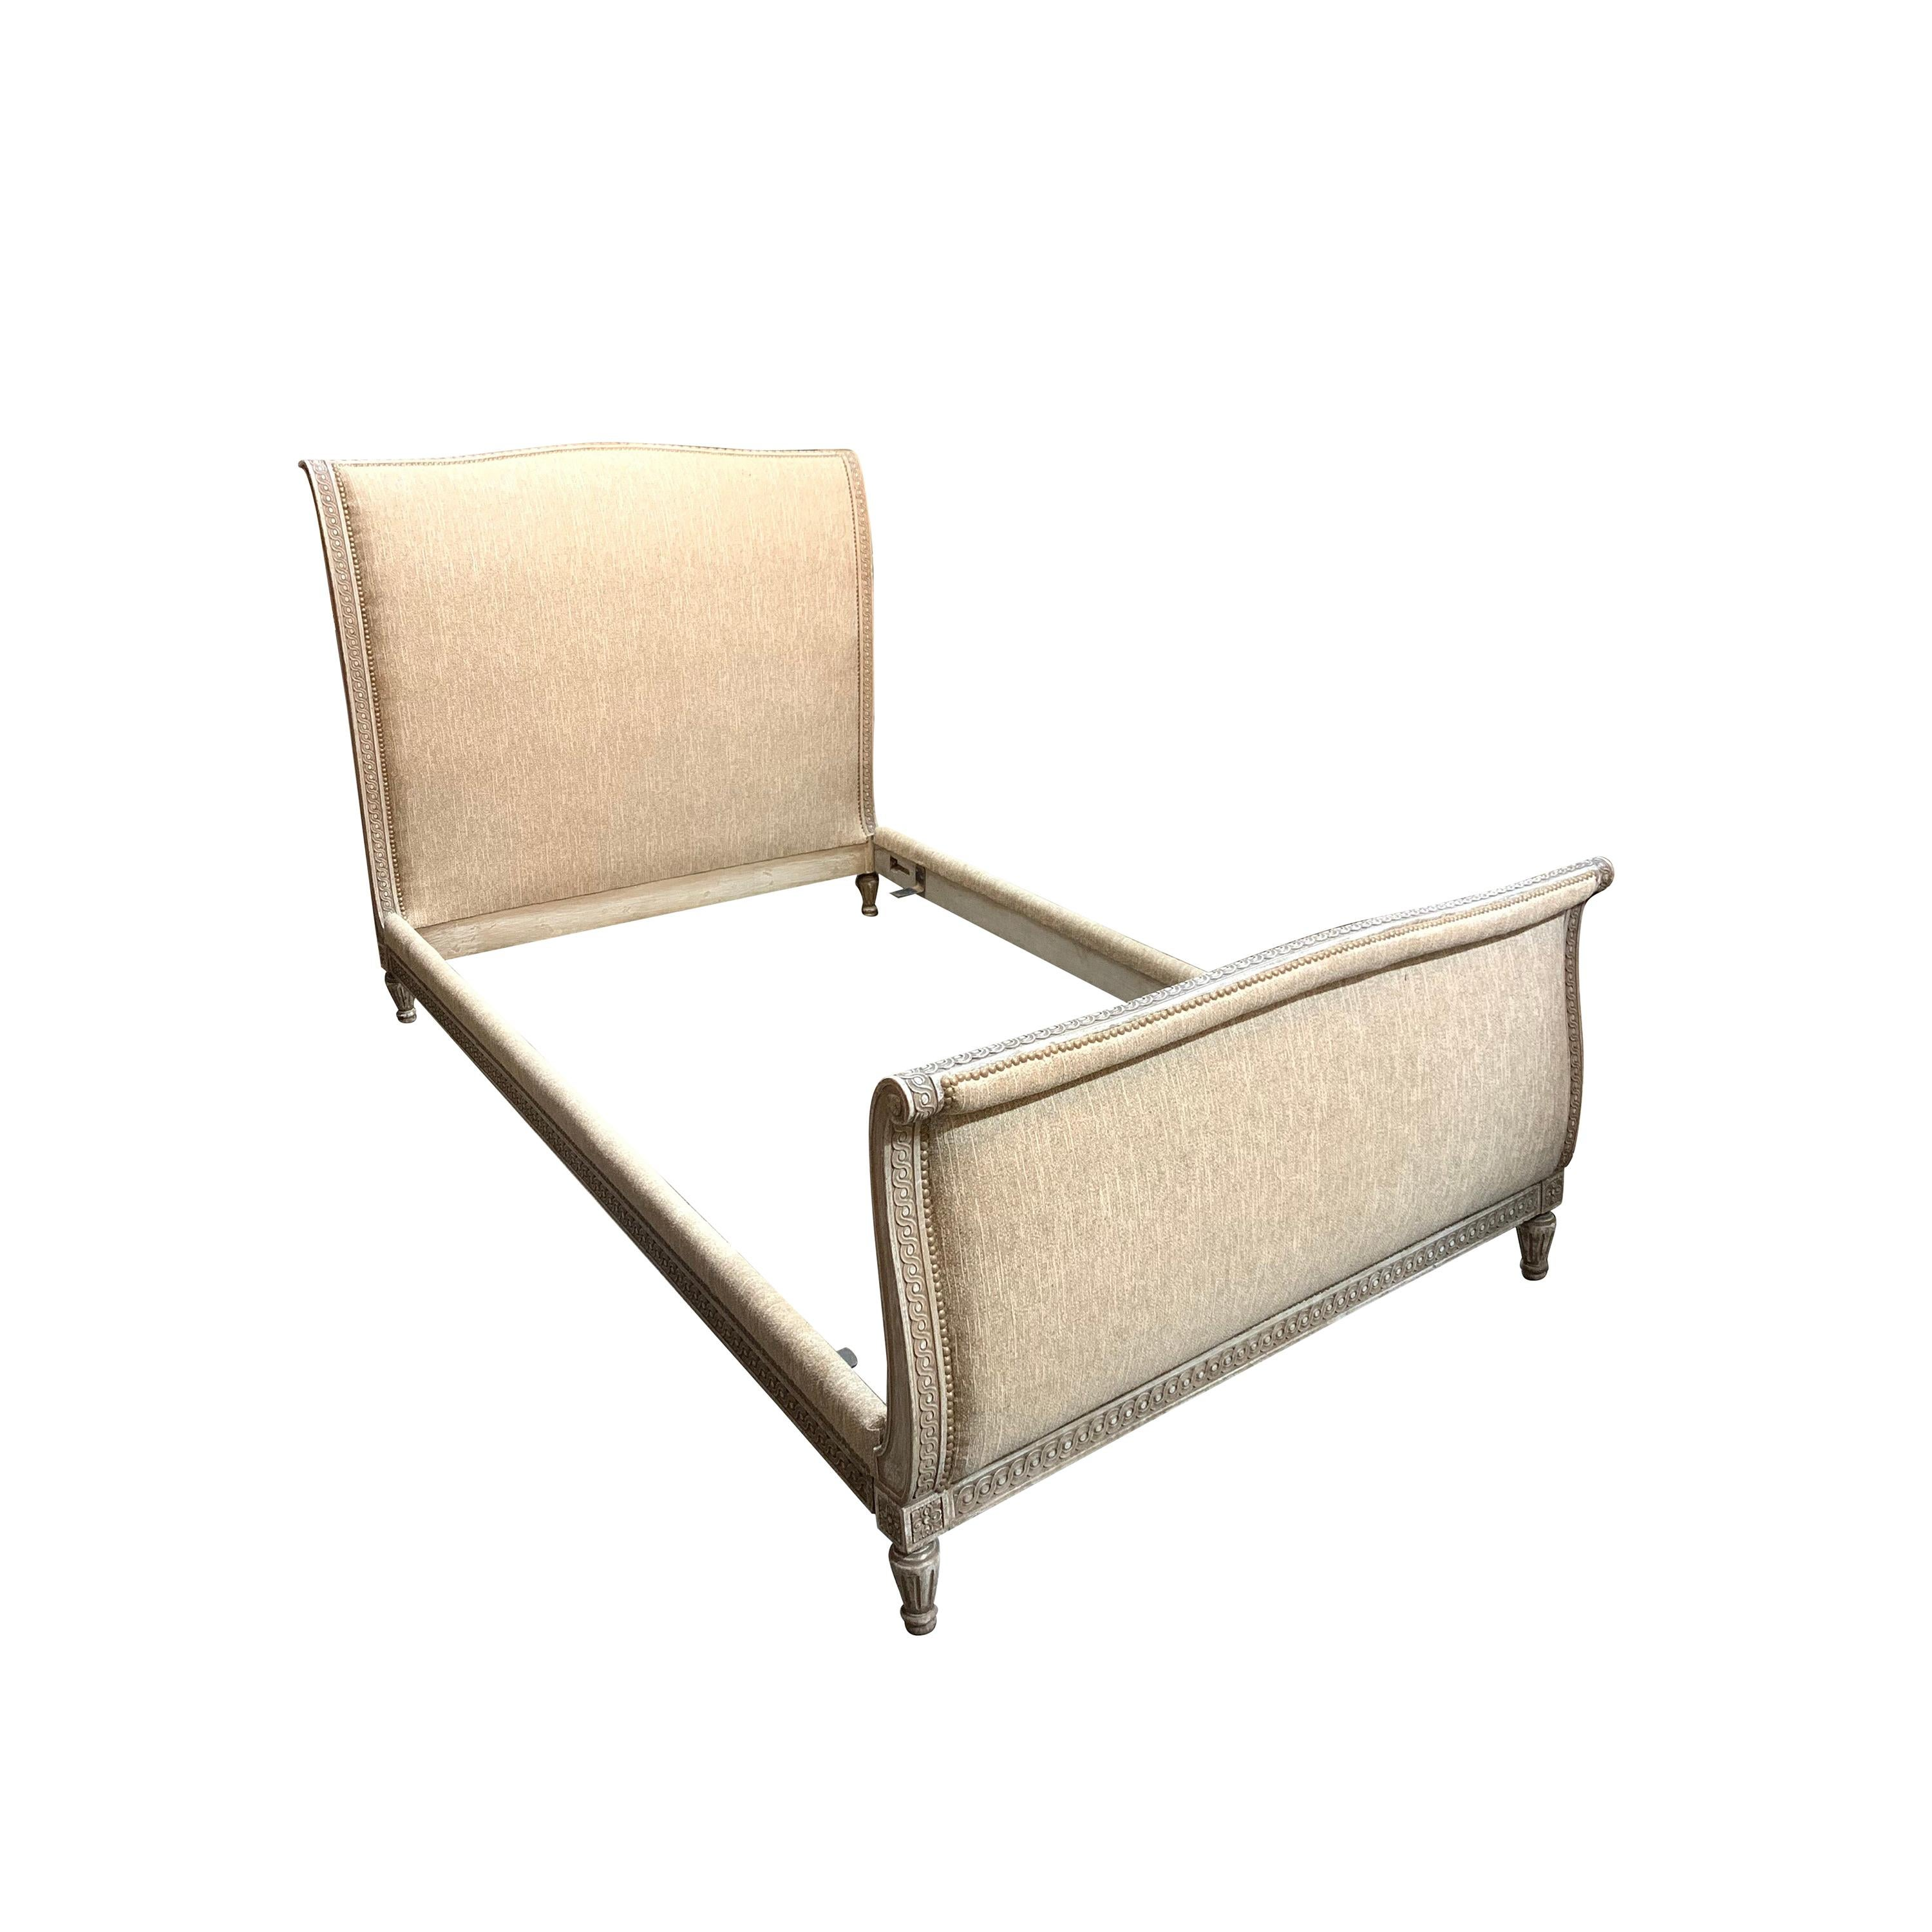 French Louis XVI Style Upholstered Bed